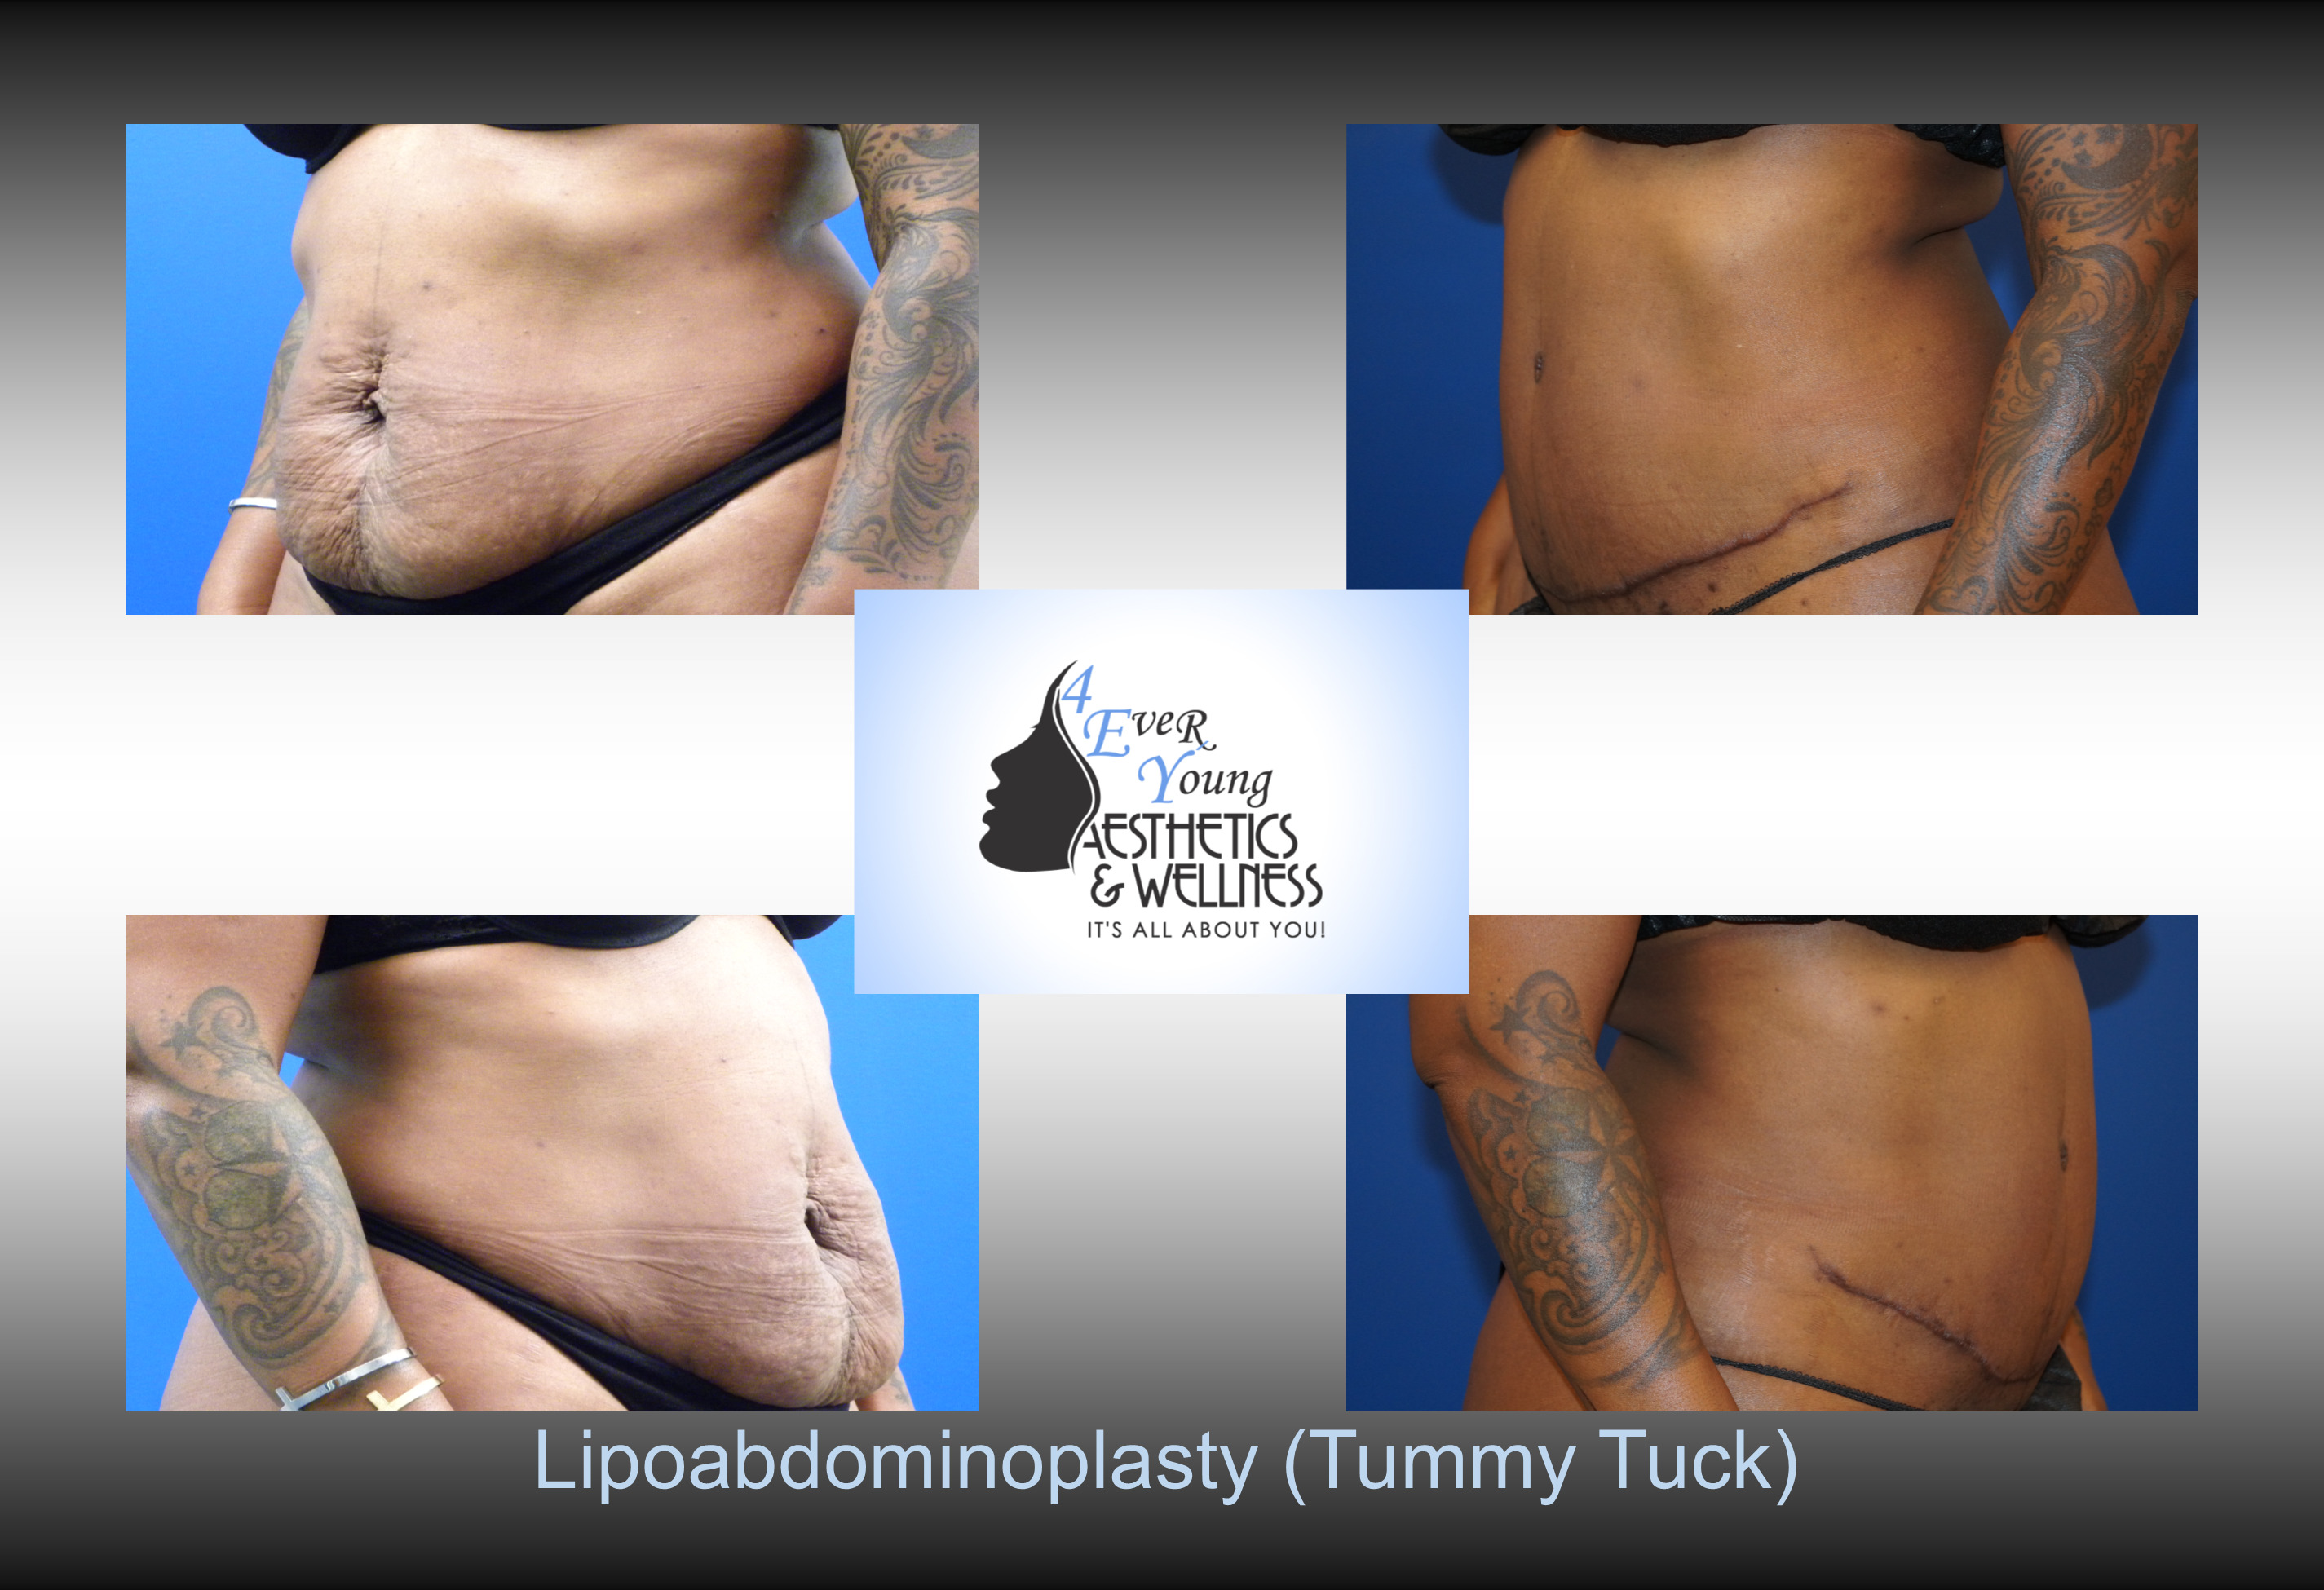 liposuction tummy tuck, Tummy Tuck, also known as abdominoplasty, lipoabdominoplasty, liposuction tummy tuck, is a procedure to that corrects a rectus diasthasis and removes excess or poor quality skin from the abdomen. We combine our tummy tuck with liposuction in order to contour the body resulting in a flat stomach with scars that are placed low in the bikini line. Our liposuction is accomplished by either traditional tumescent liposuction, laser liposuction (Smartlipo), vaser liposuction with the use of a power assisted liposuction handle to remove fat more thoroughly and rapidly. We use abdominal liposuction, flank liposuction, back liposuction, arm liposuction, thigh liposuction and ankle liposuction to remove unsightly fat from problem areas with our tumescent liposuction procedures with or without sedation. If you desire we use autologous fat transfer (fat grafting) to use the fat obtained as the most natural dermal filler unlike synthetic fillers (Restylane, Juvederm, Sculptra, Radiesse, Belotero, Perlane) to improve fine lines and wrinkles of the face, hand rejuvenation with fat, fat transfer to breast, Brazilian Butt Lift (Butt Augmentation), liposculpture, lip augmentation with fat.  Fat transfer to the breast can be a great alternative to breast augmentation, saline implants, silicone implants, breast augmentation with mastopexy or just to improve volume in the upper pole of the breast. Our autologous fat transfer is second to none and we utilize Platelet-Rich Plasma (PRP) which helps stabilize the fat transfer faster by promoting blood vessels to grow into the fat grafting. Most people think that a Brazilian butt lift (BBL) is a plastic surgery procedure but instead it is a cosmetic surgery procedure strictly performed for enhancement of the buttock area to transform your butt into the big Brazilian butt and replicate the popular Brazilian ass that Brazilian butt women have been getting Brazilian butt lifts to have for years.  As part of our mommy make